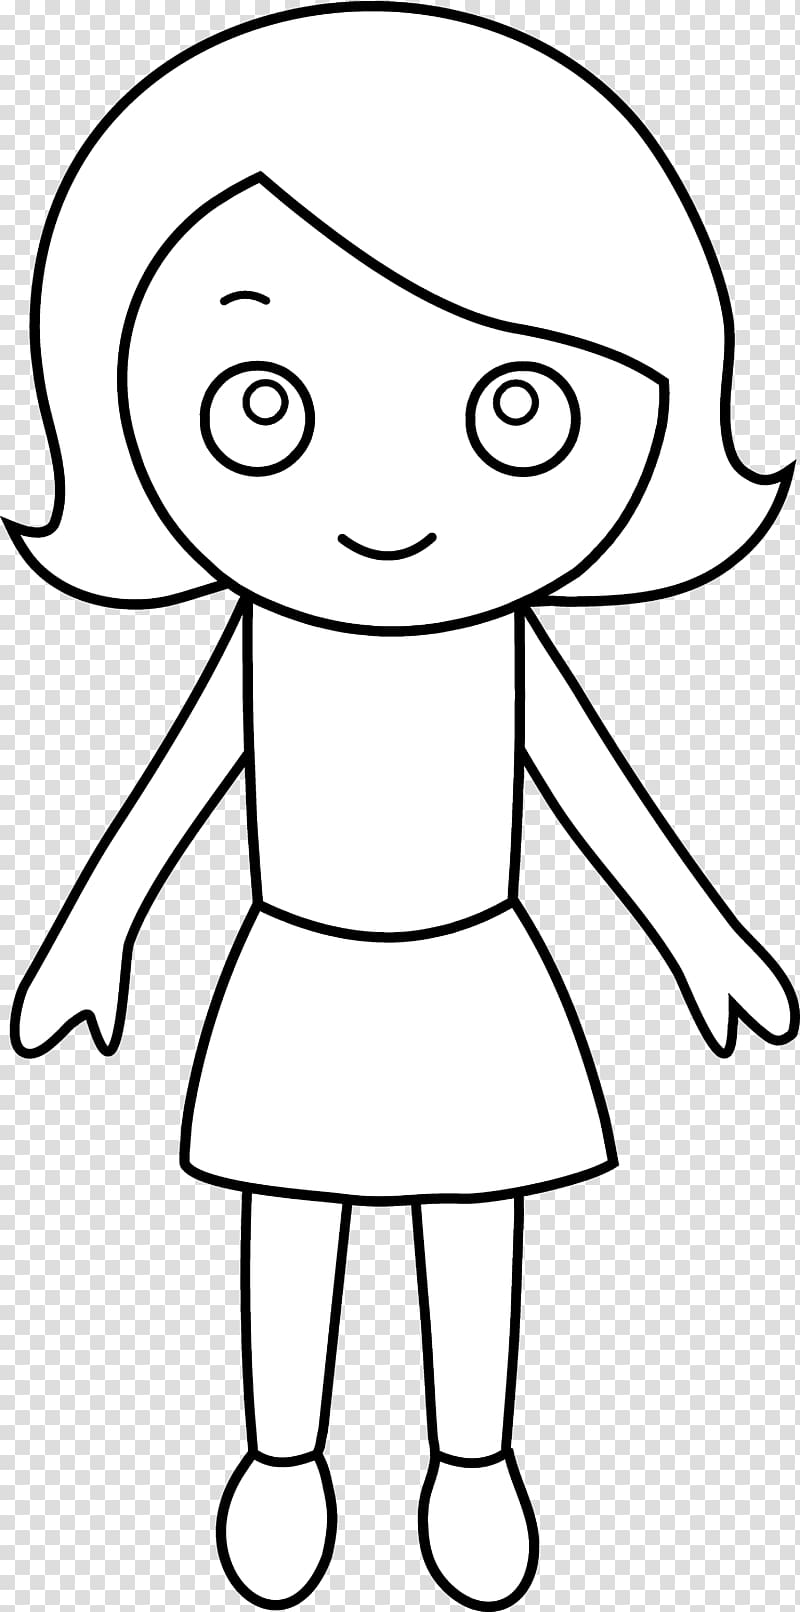 Coloring book Girl Child , girl outline transparent.